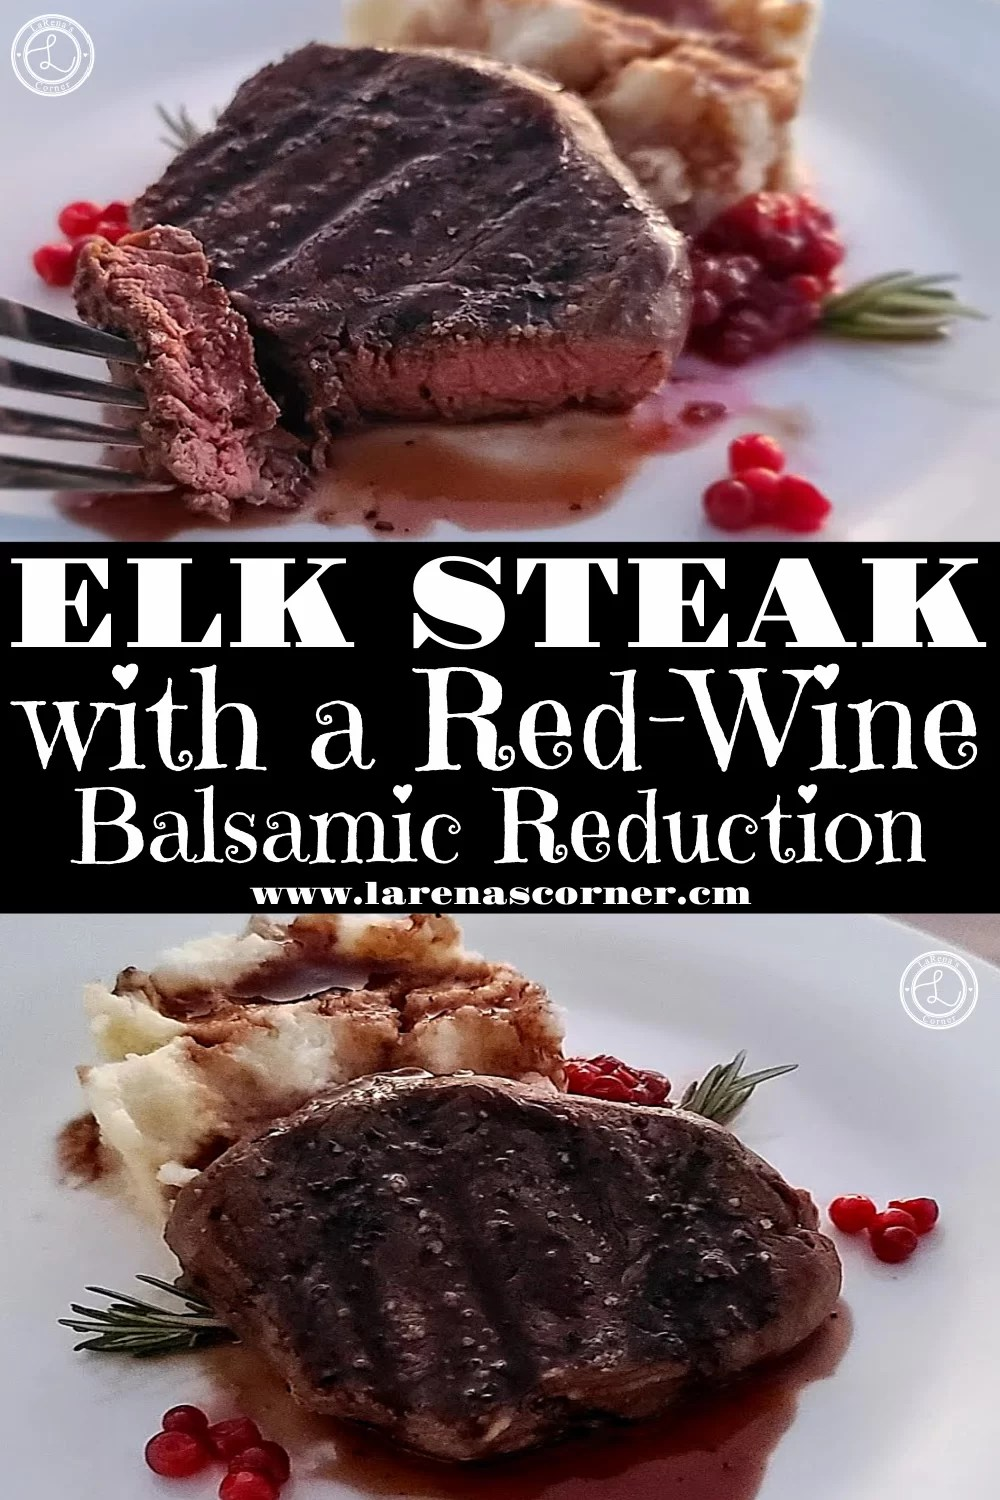 Two pictures of Elk Steak. One of the whole steak and one of the steak and a piece on a fork.